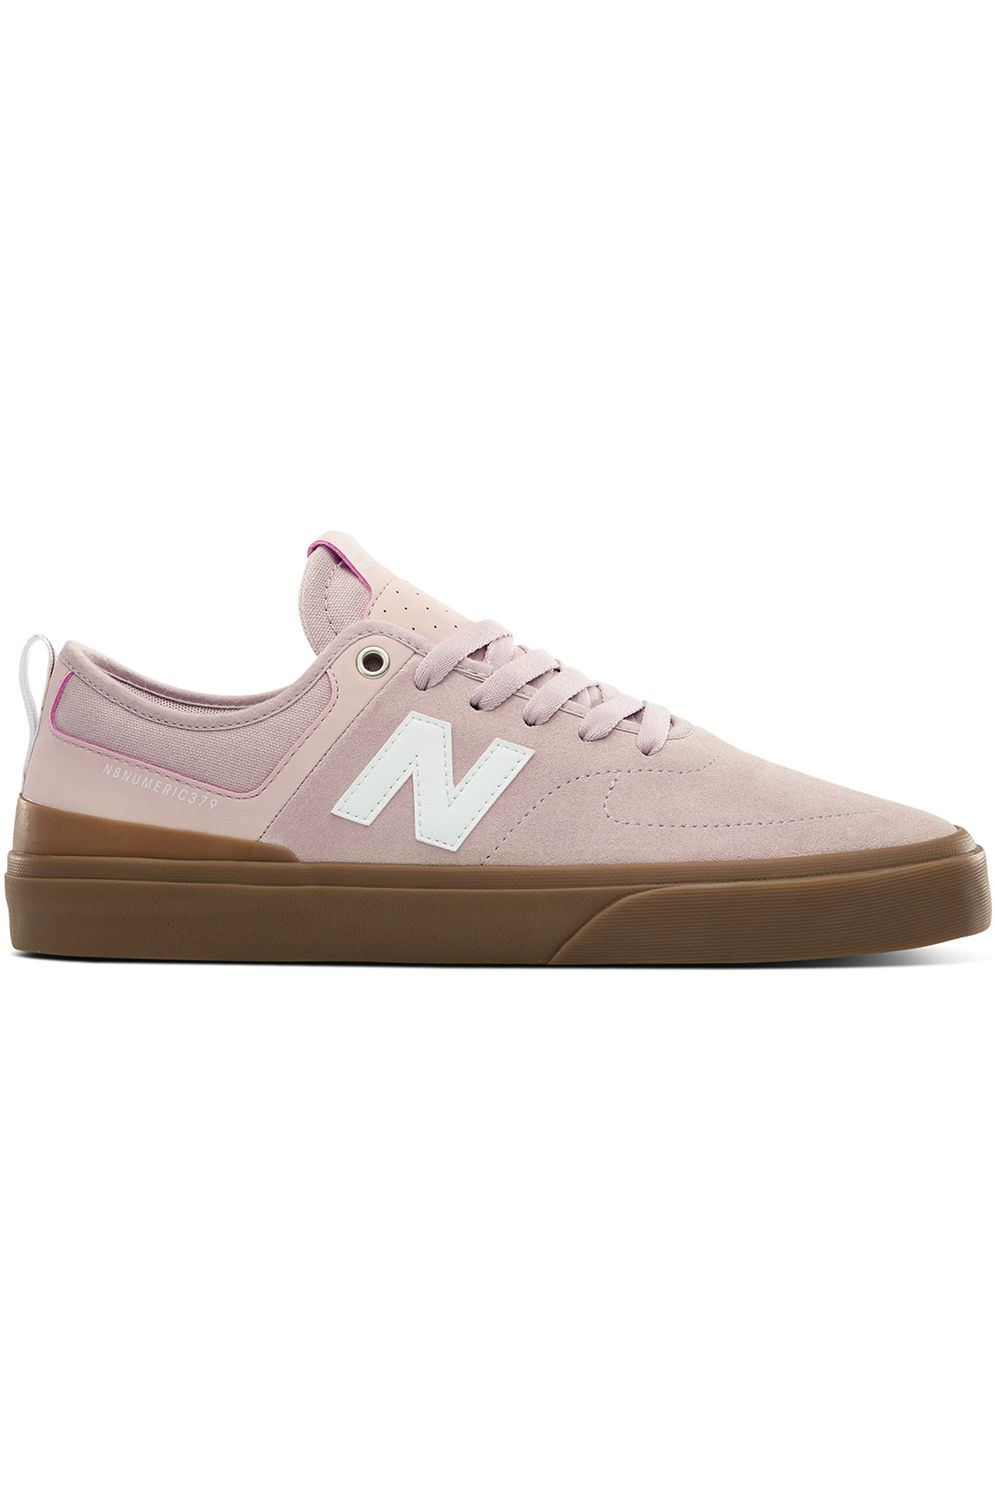 New Balance Shoes NB NUMERIC 379V1 Space Pink